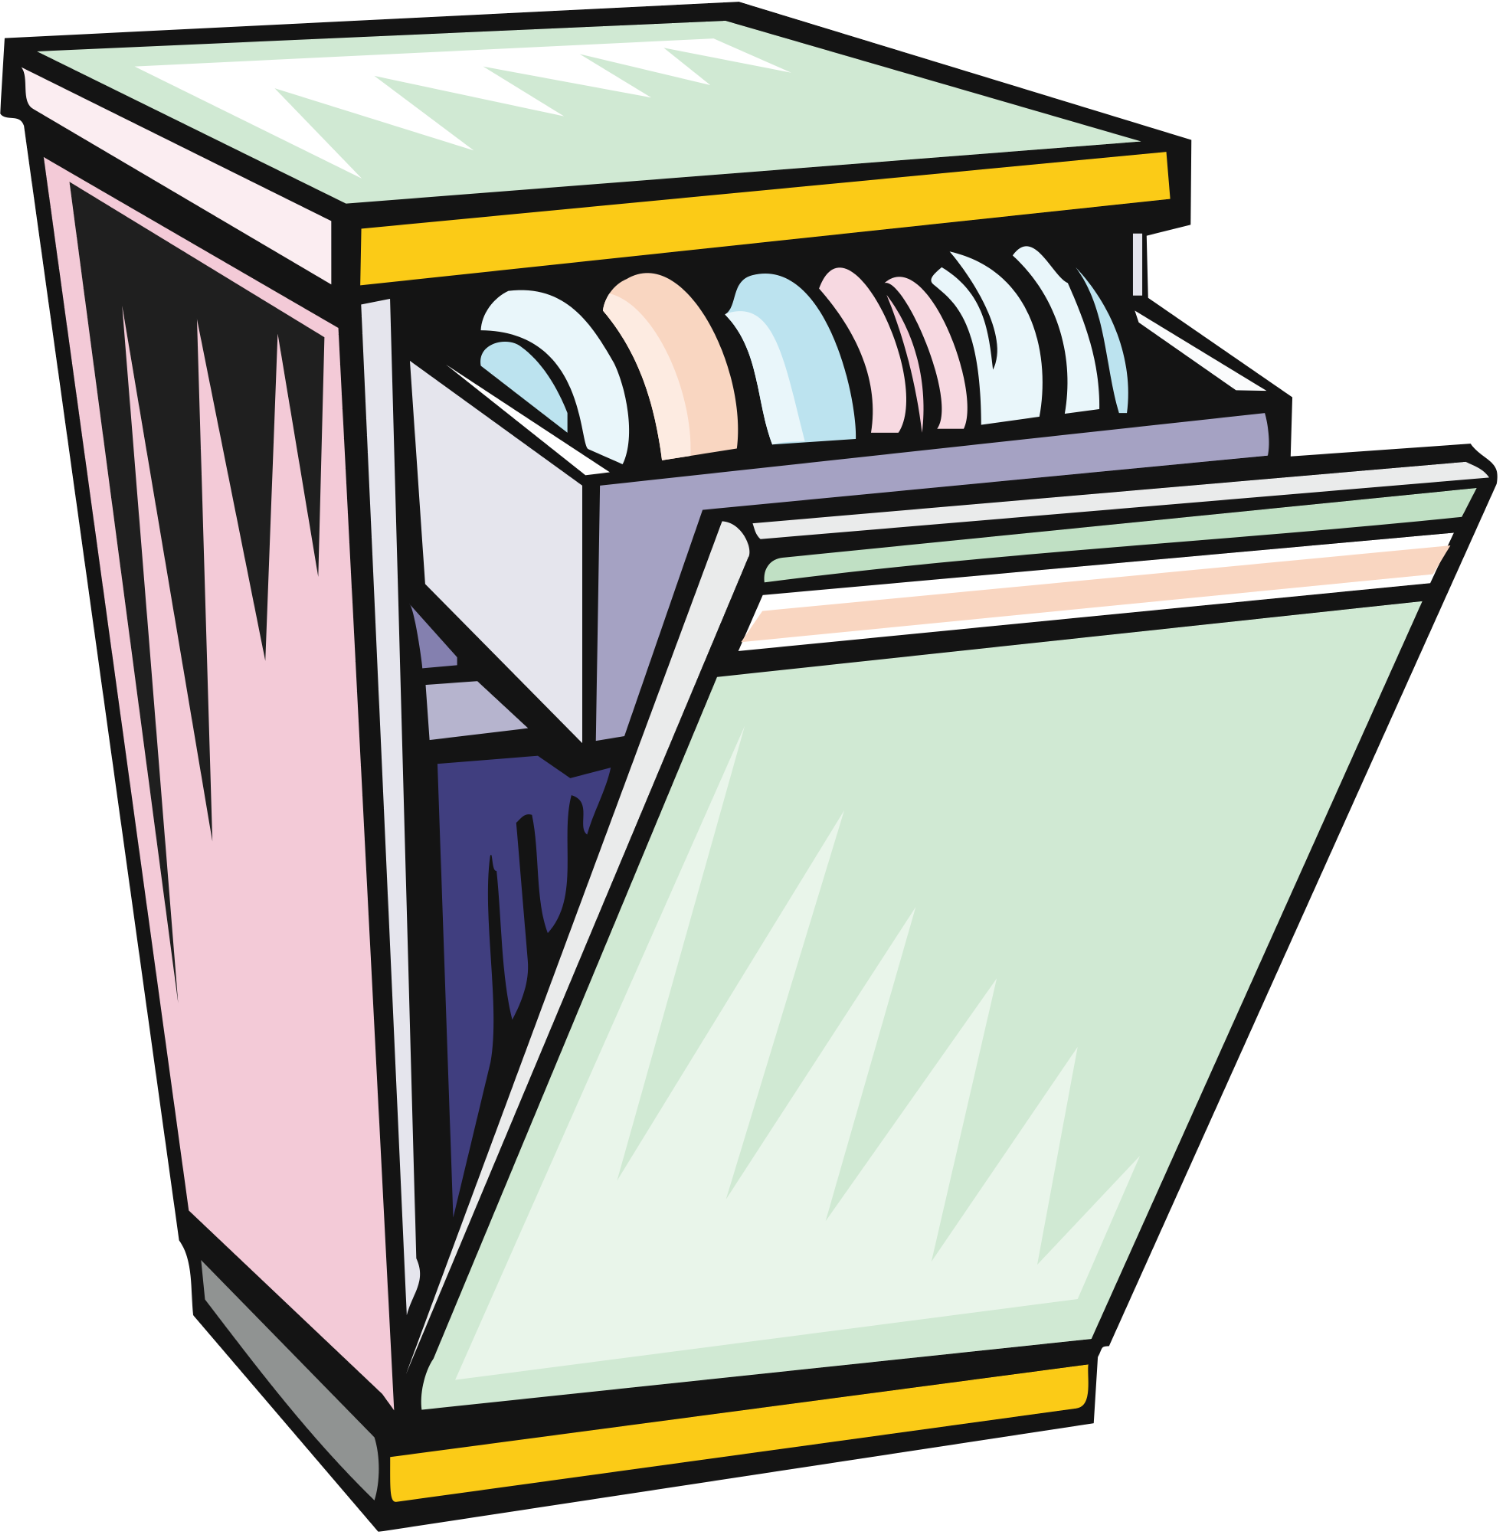 Free Dishwasher Cliparts, Download Free Clip Art, Free Clip.